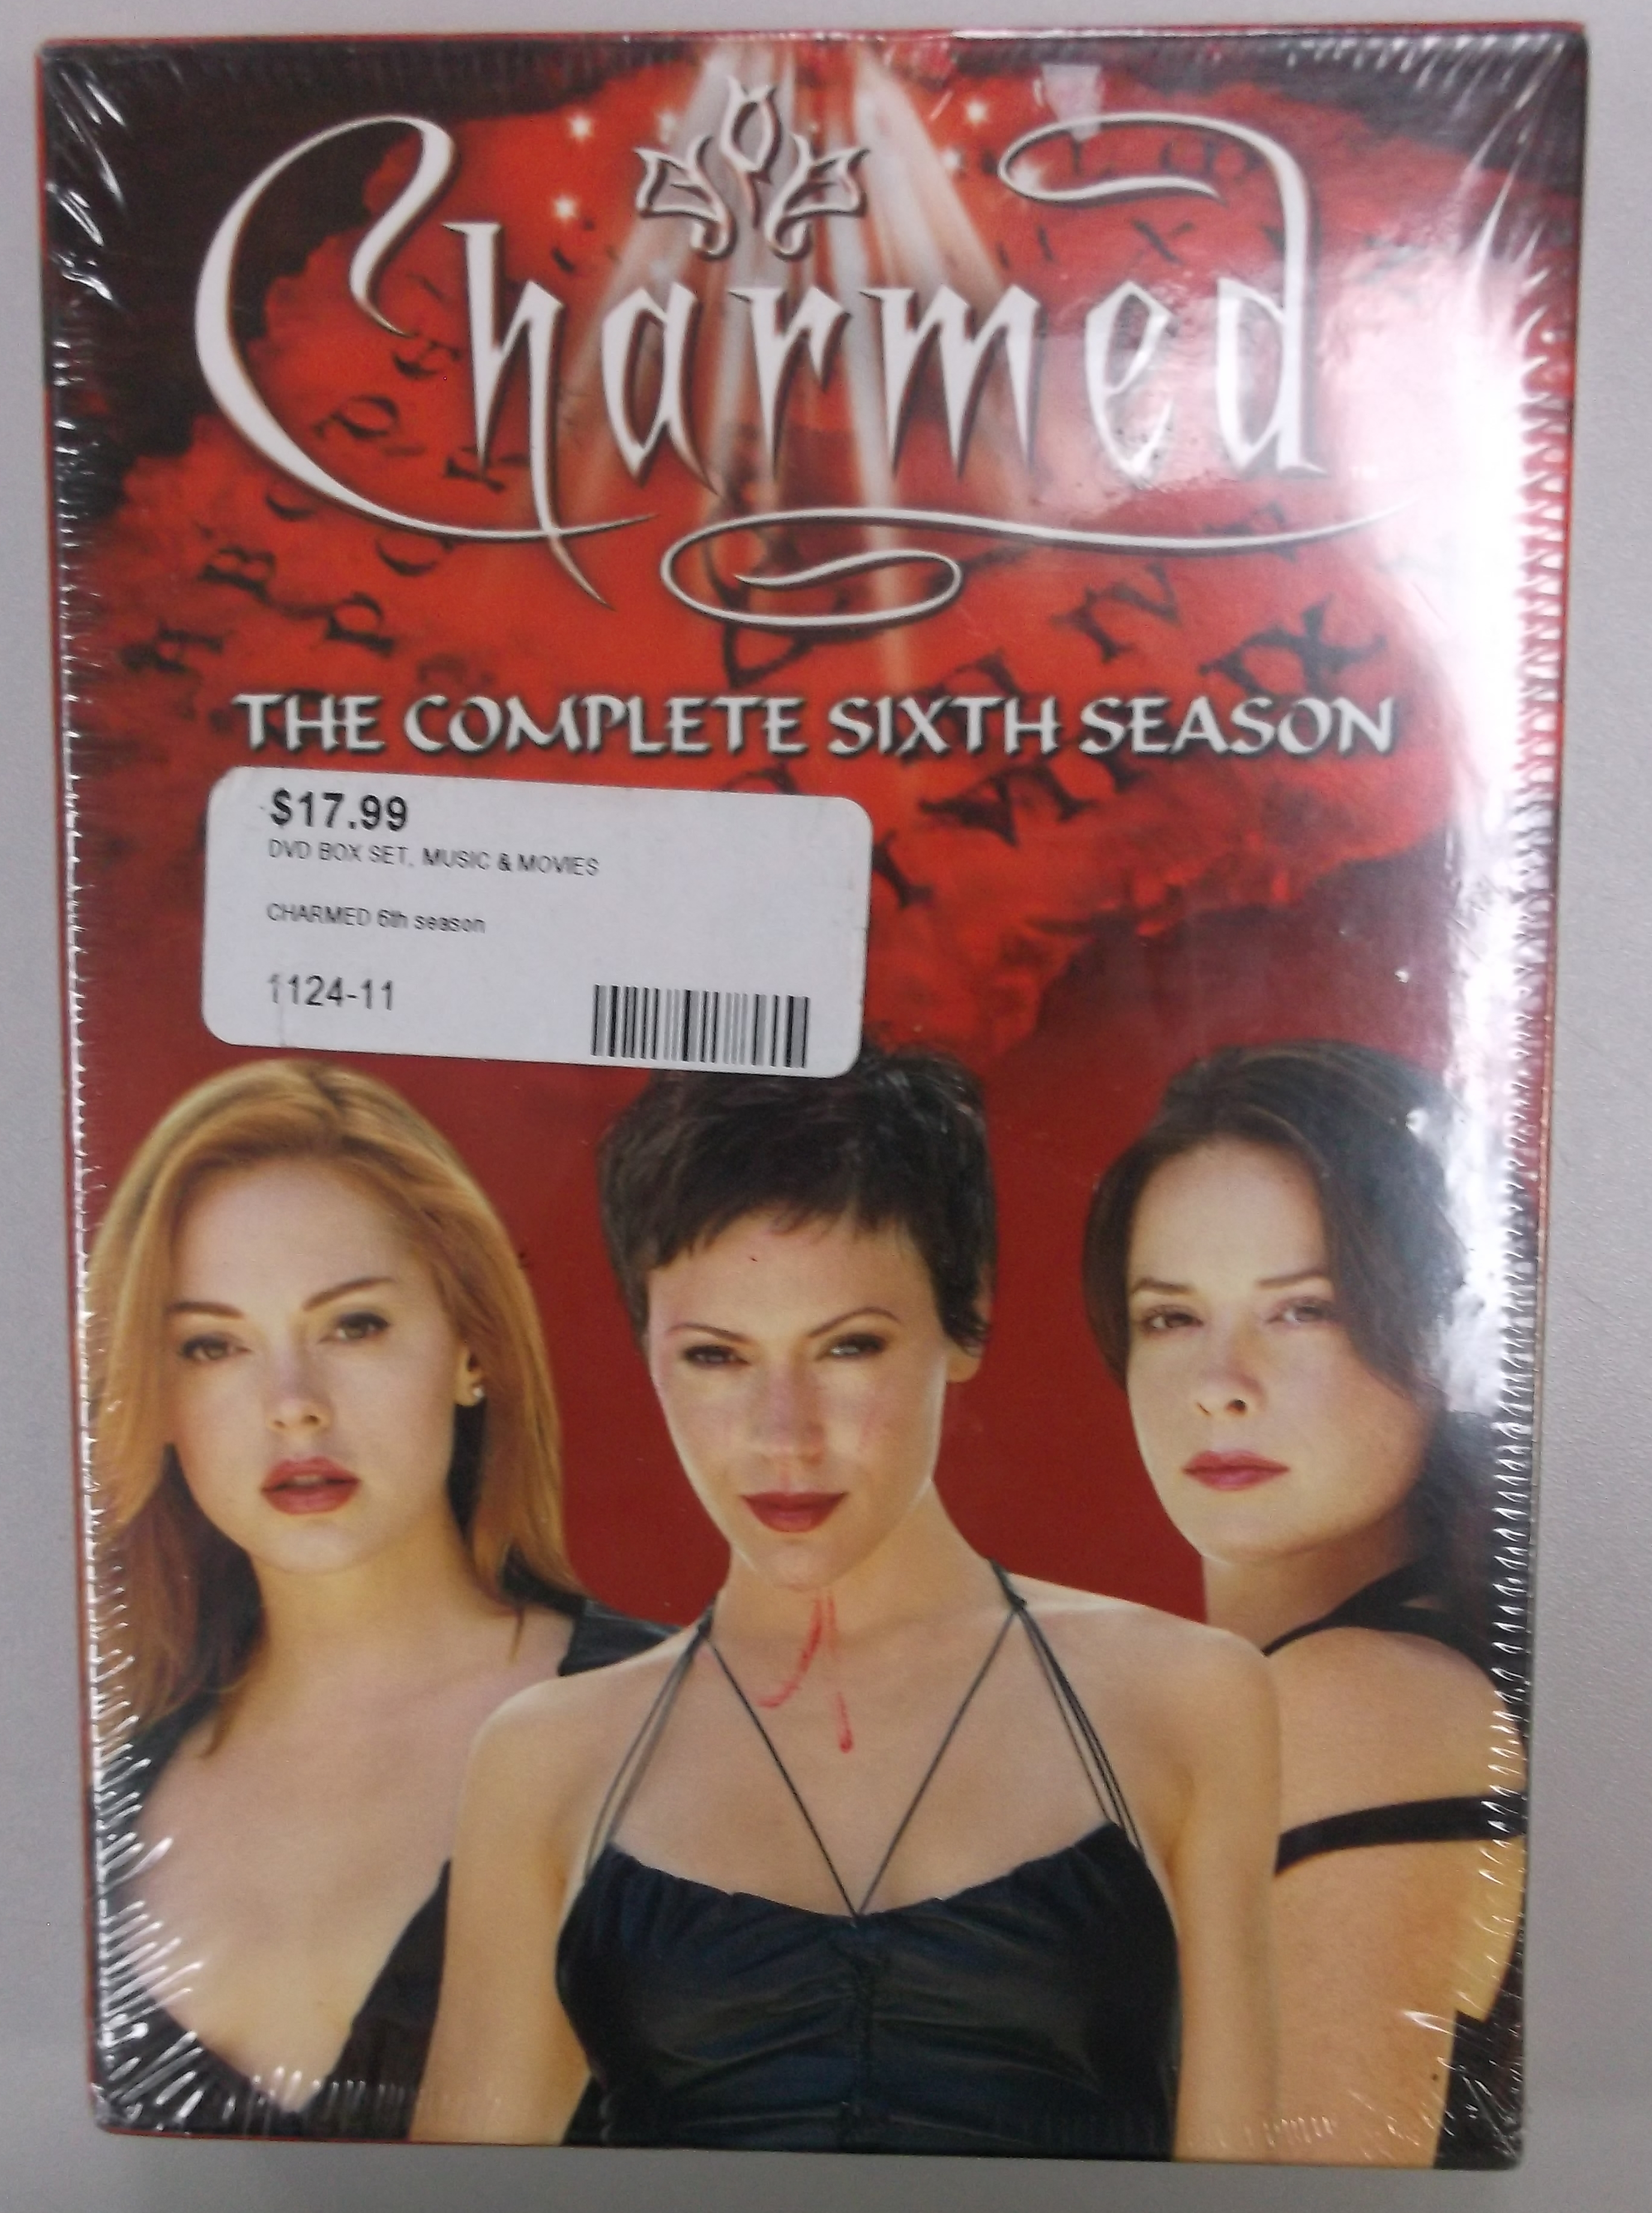 CHARMED - SEASON 6 - DVD BOX SET